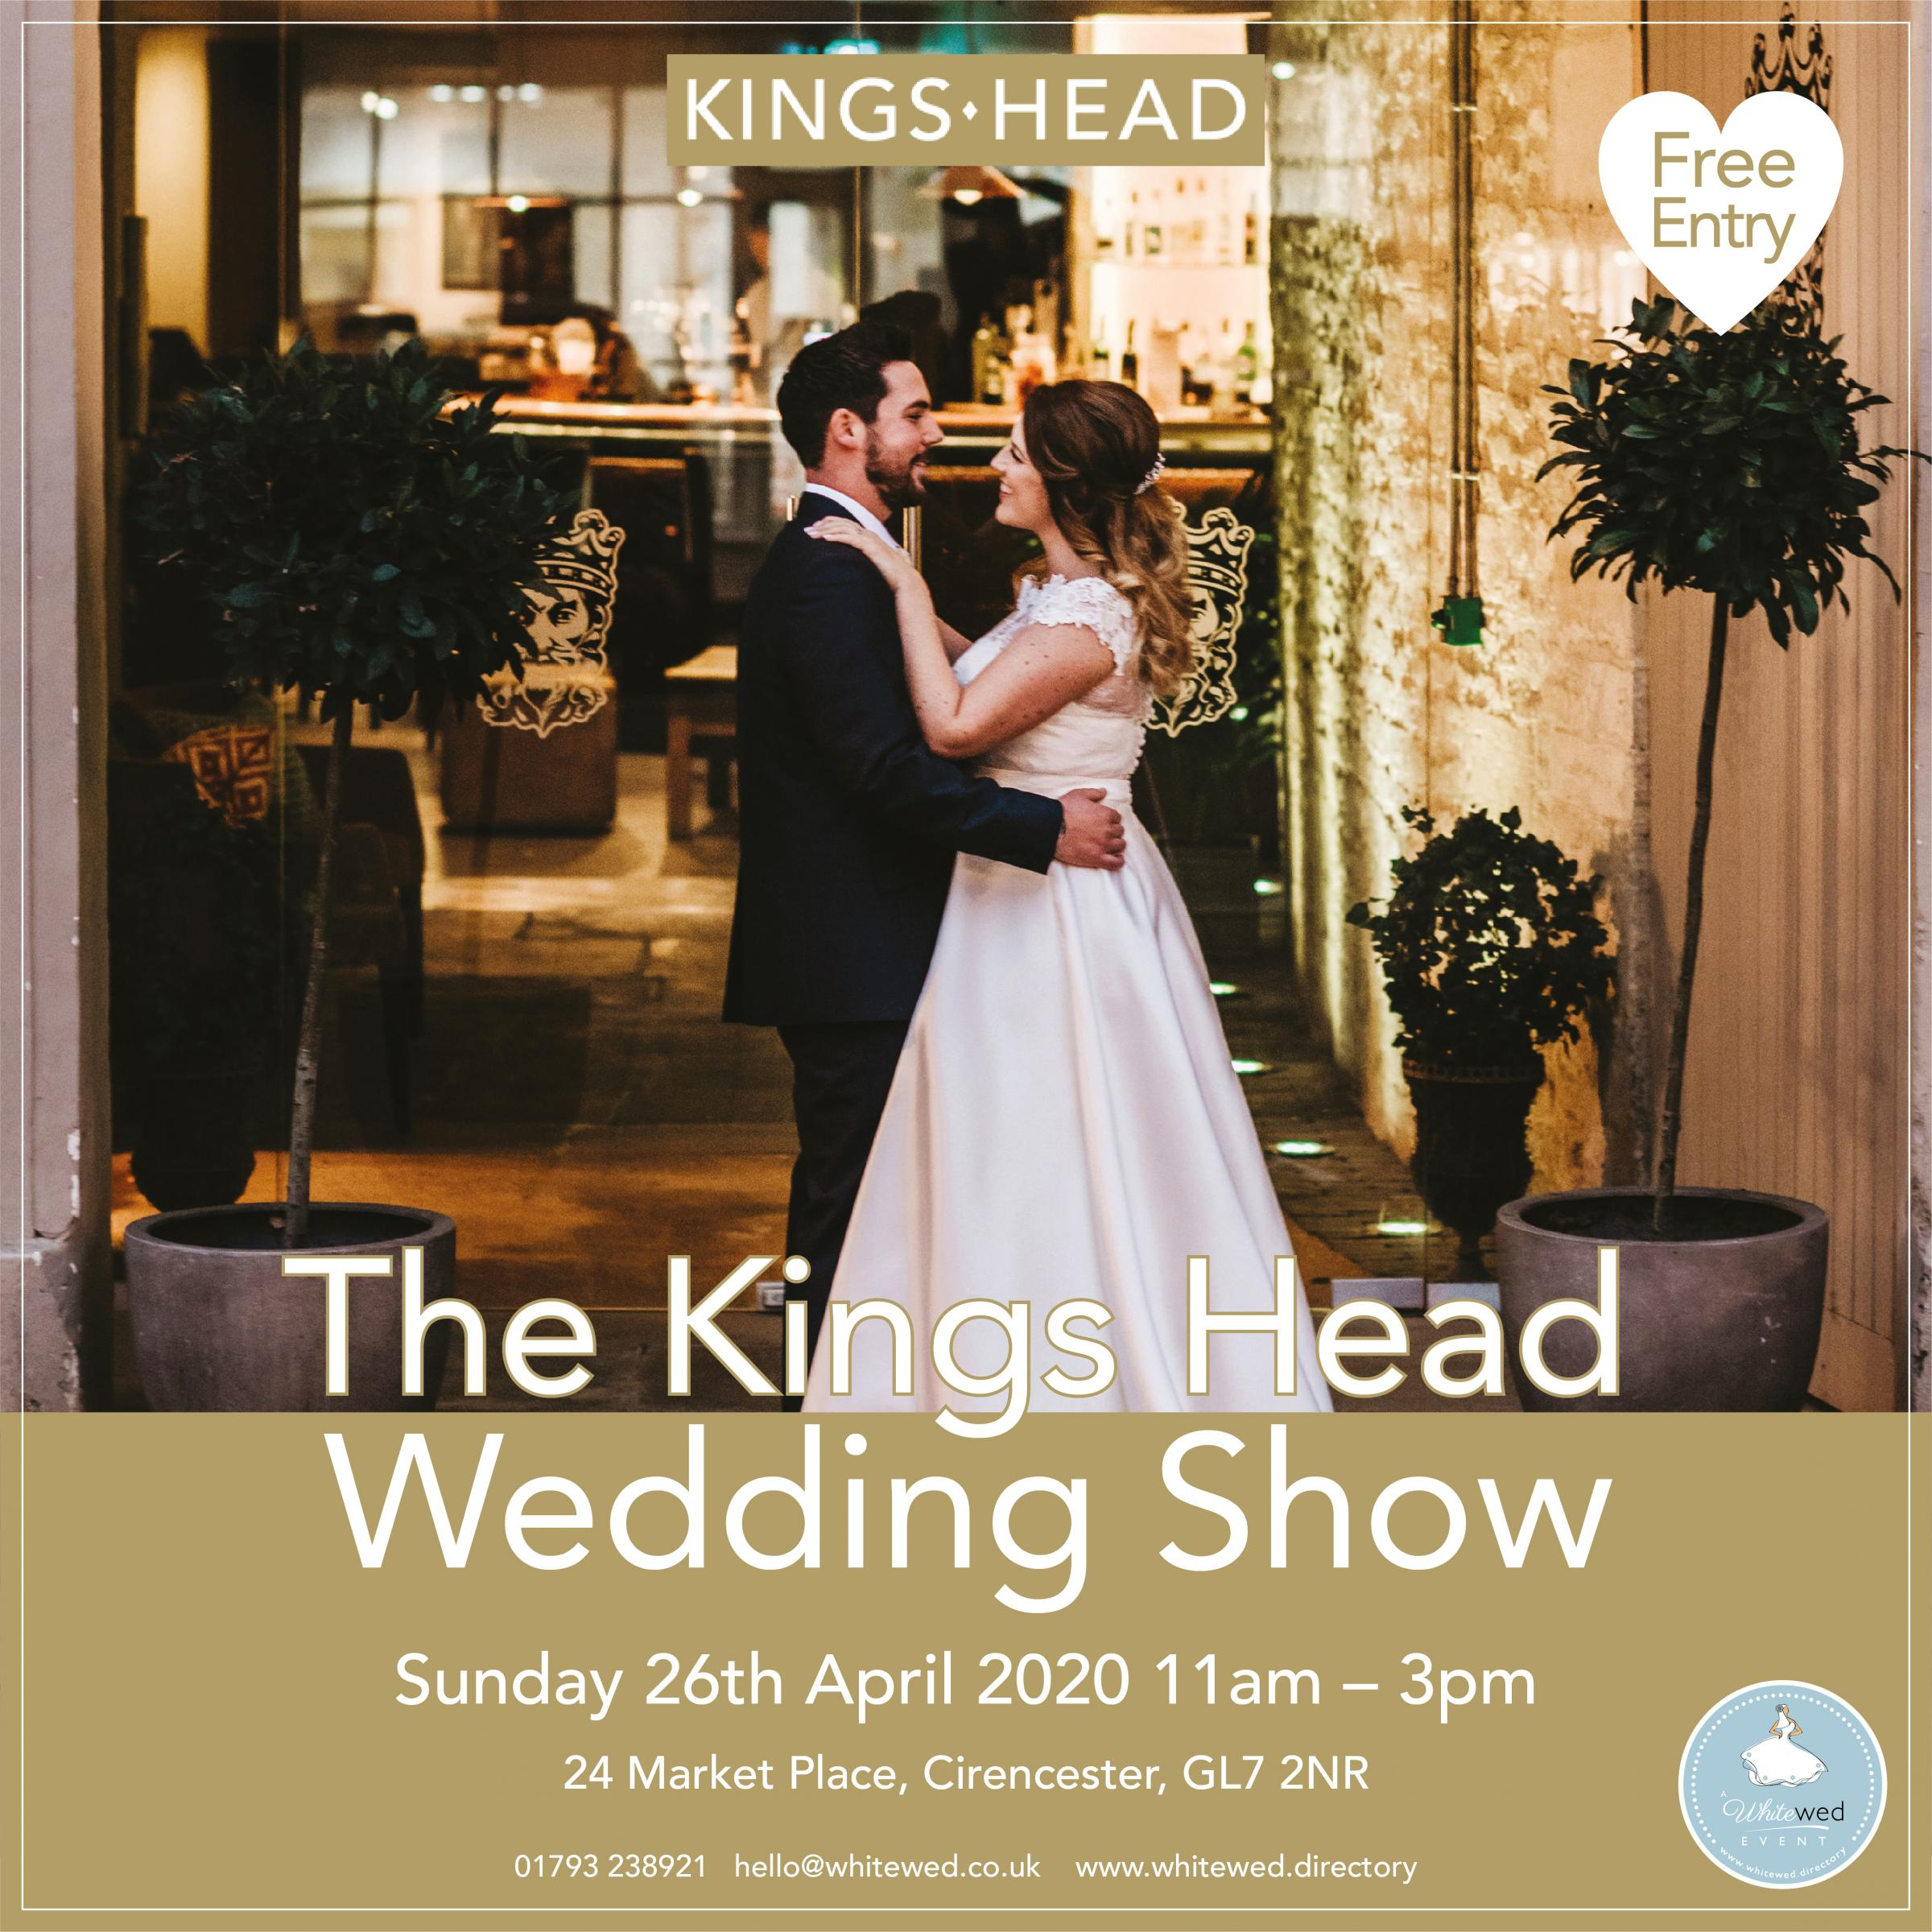 The Kings Head, Cirencester Wedding Show